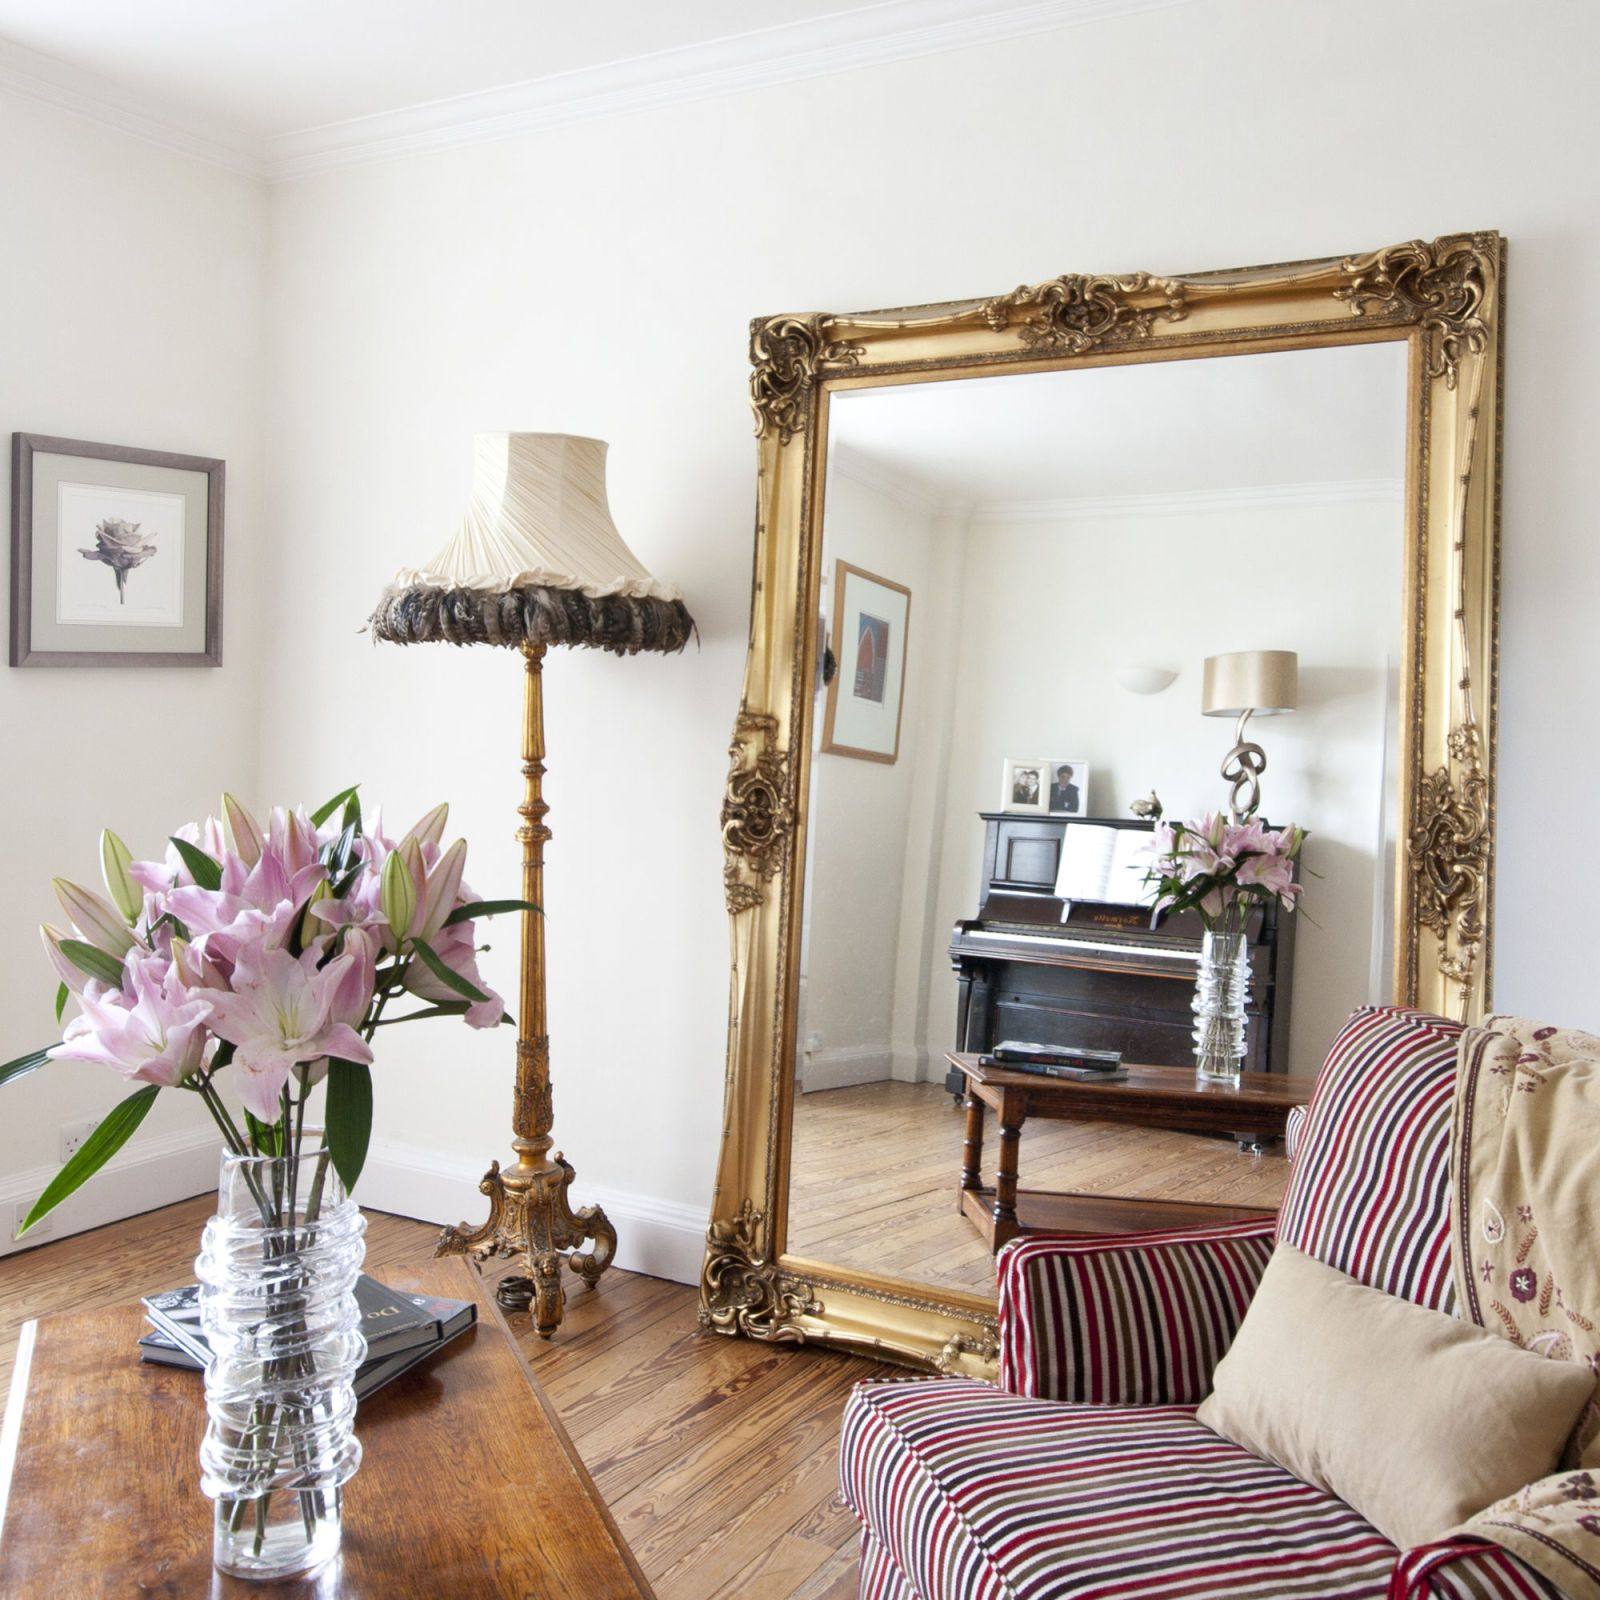 6 Clever Ways To Use Mirrors To Make Your Home Feel Bigger